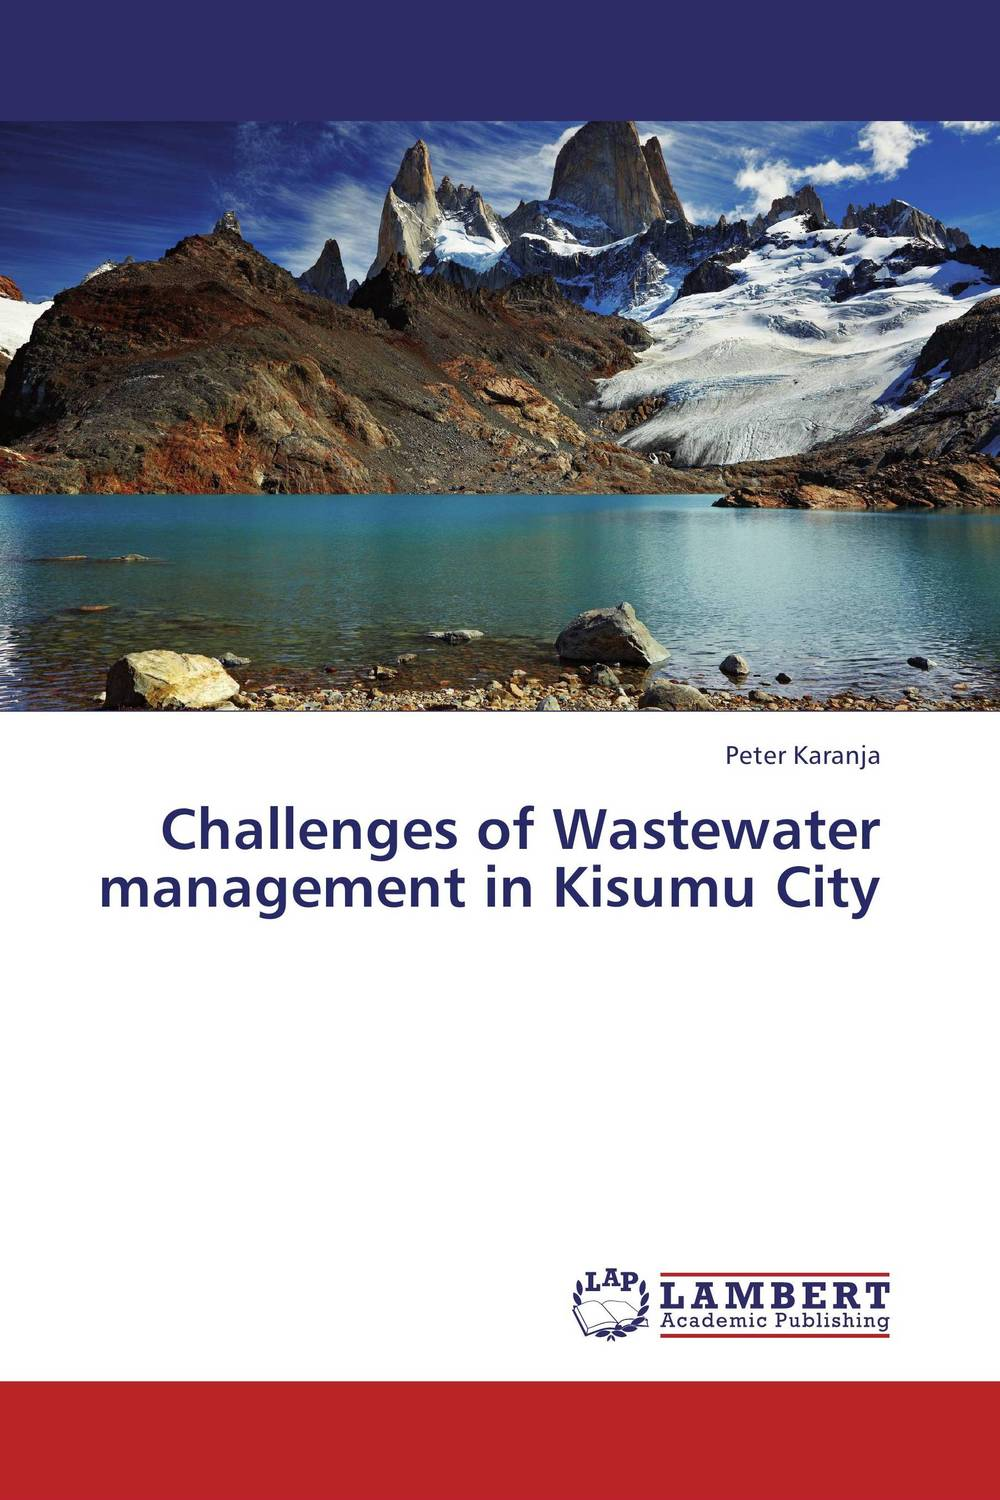 Challenges of Wastewater management in Kisumu City analysis of pharmaceuticals in wastewater and their photodegradation